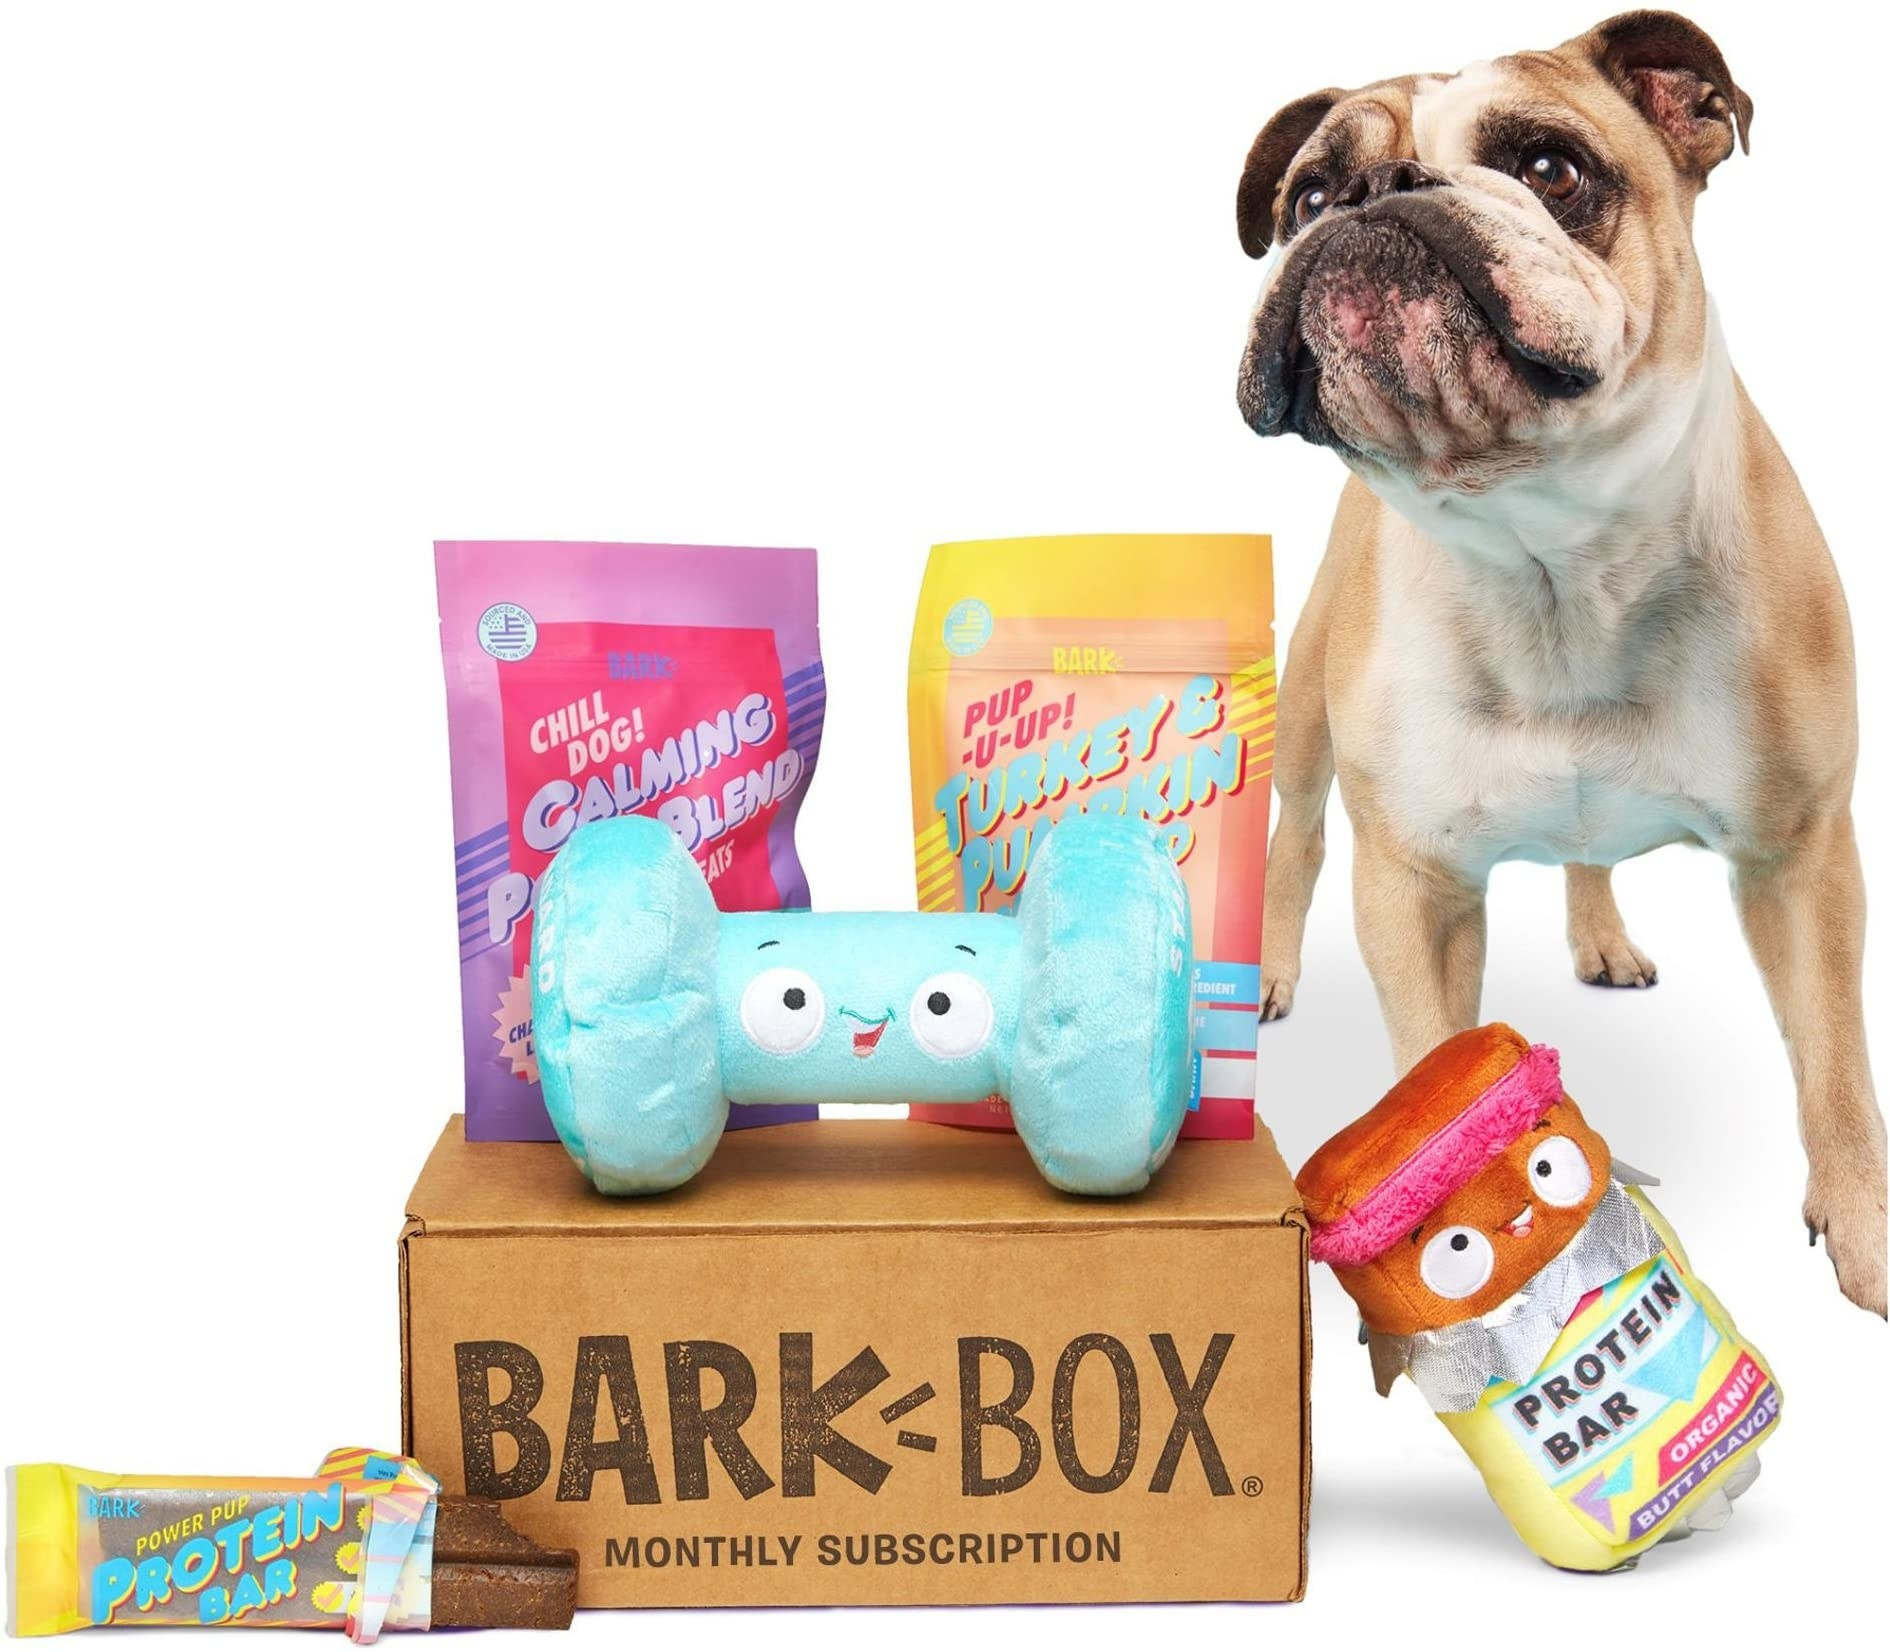 large dog with a box and toys